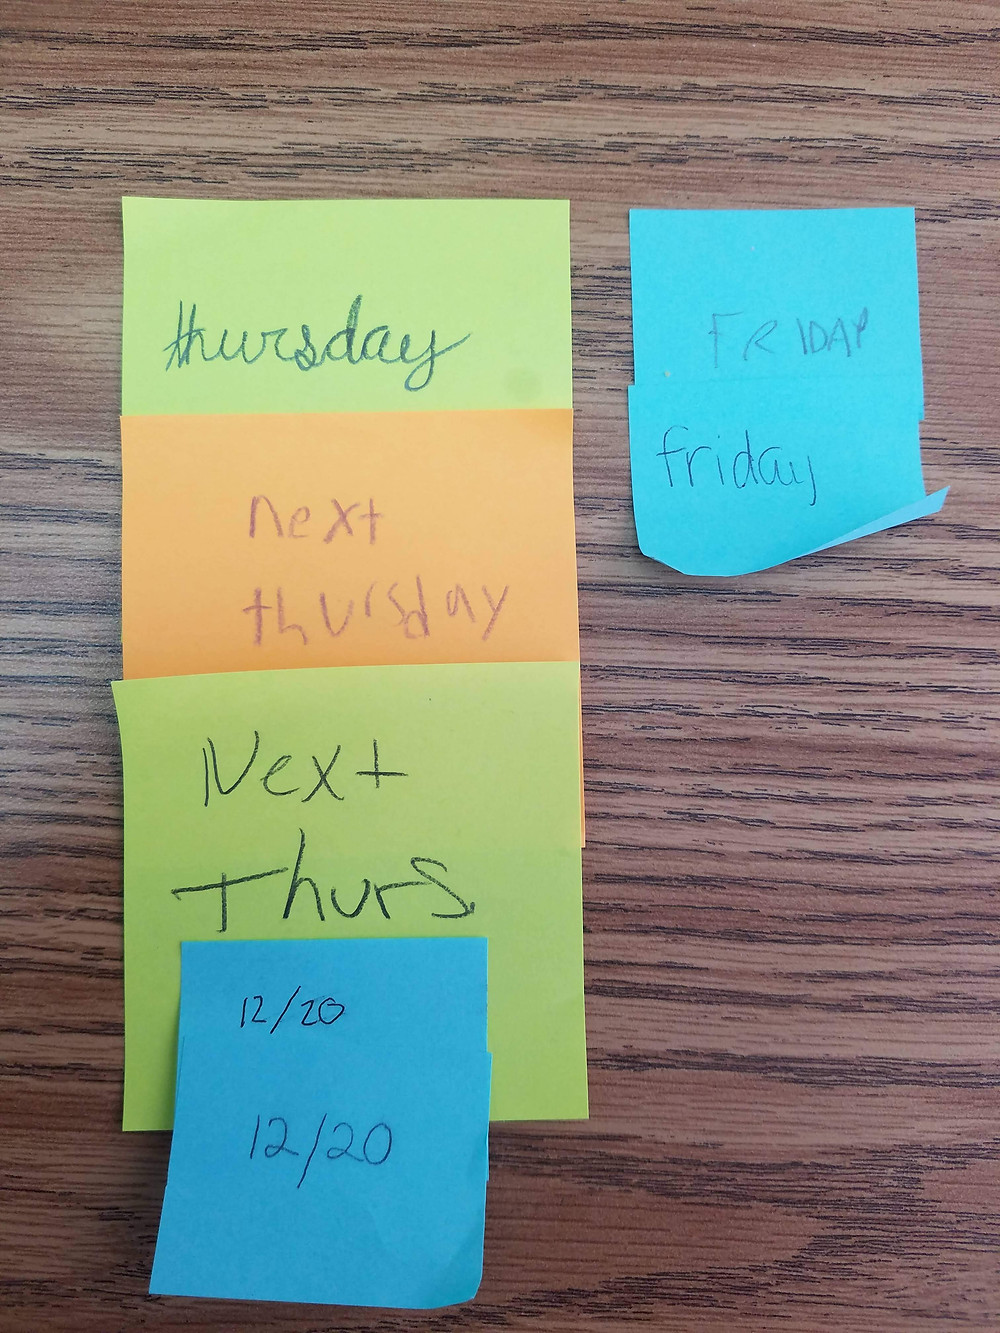 The post-it notes voting system